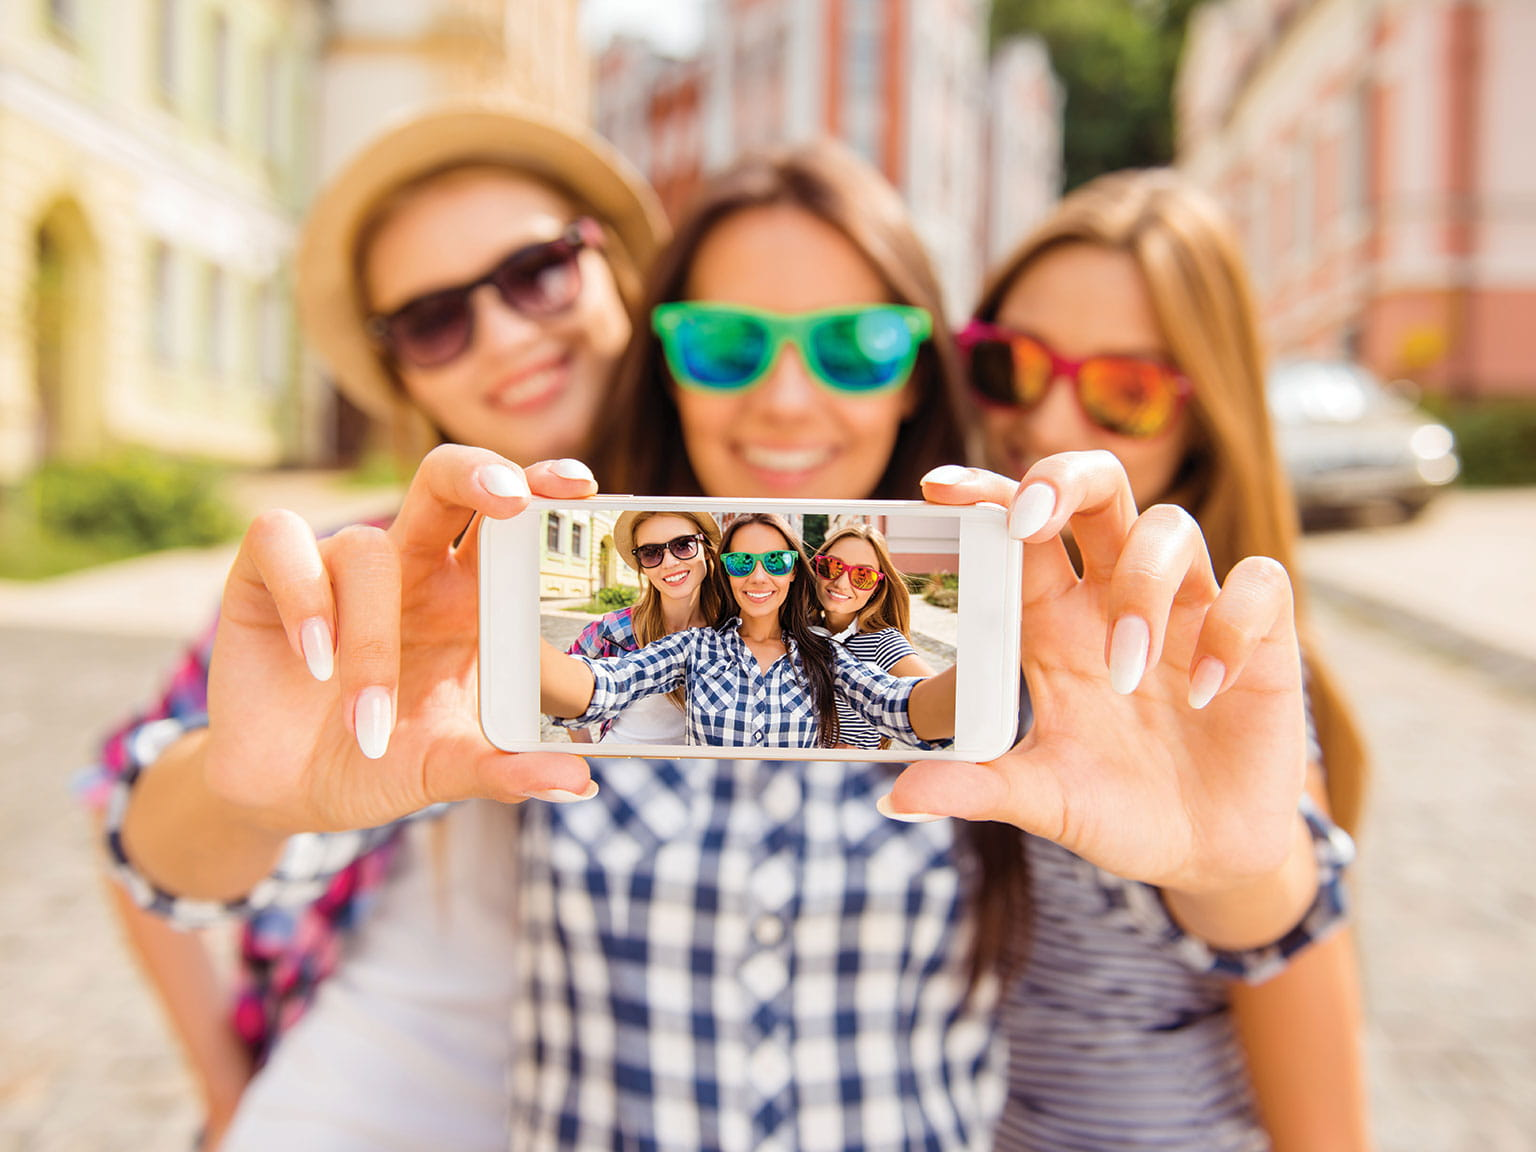 Three girls taking a selfie on an iPhone outdoors